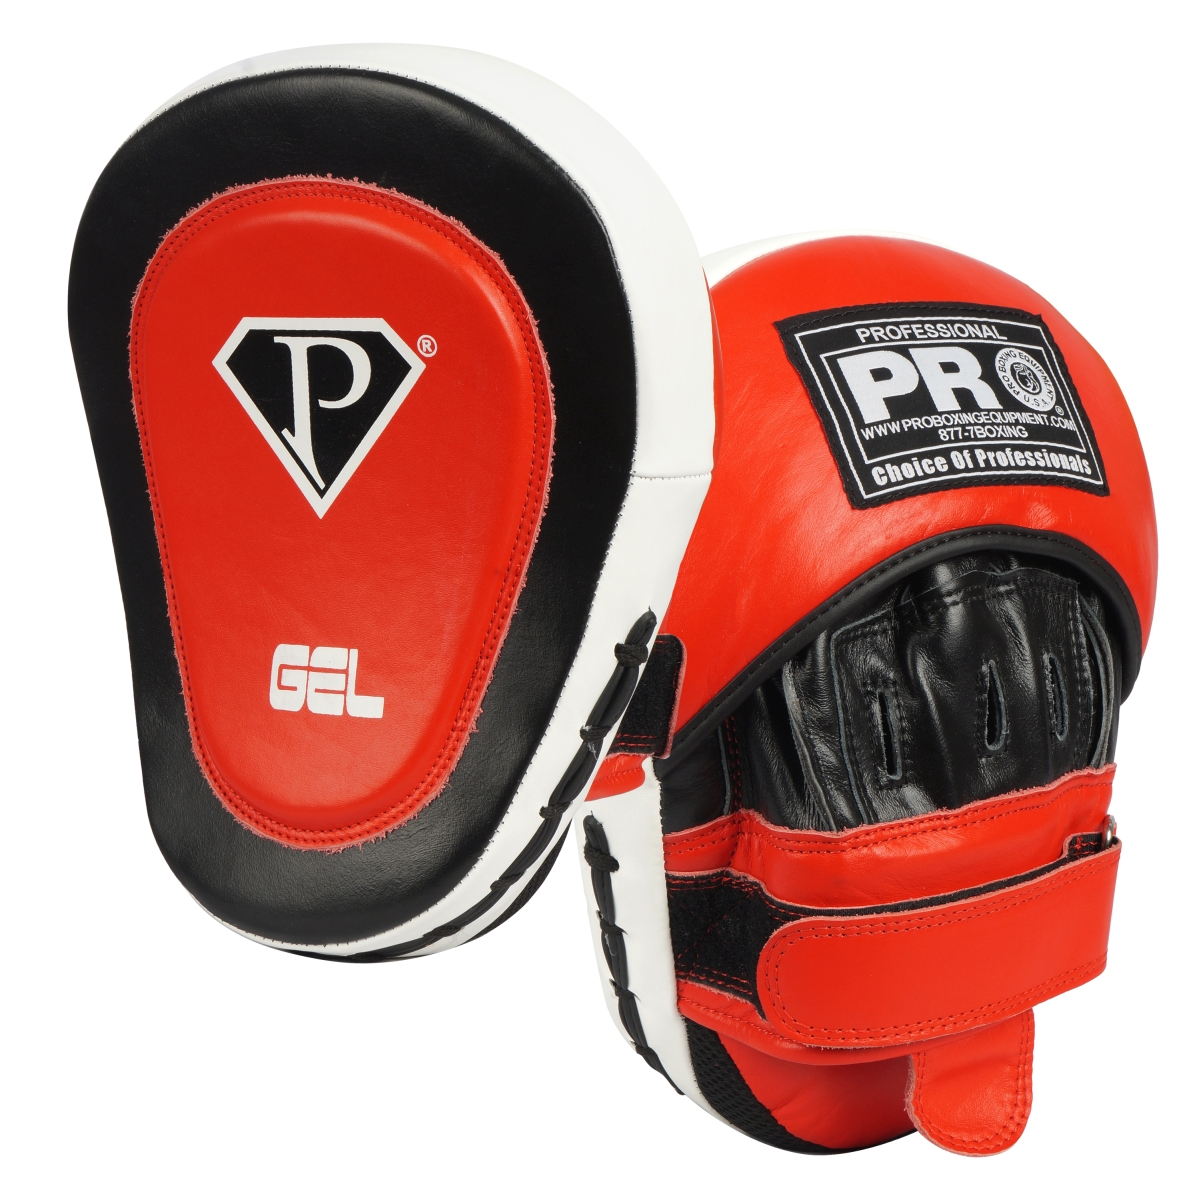 PRO GEL Focus Mitts Leather